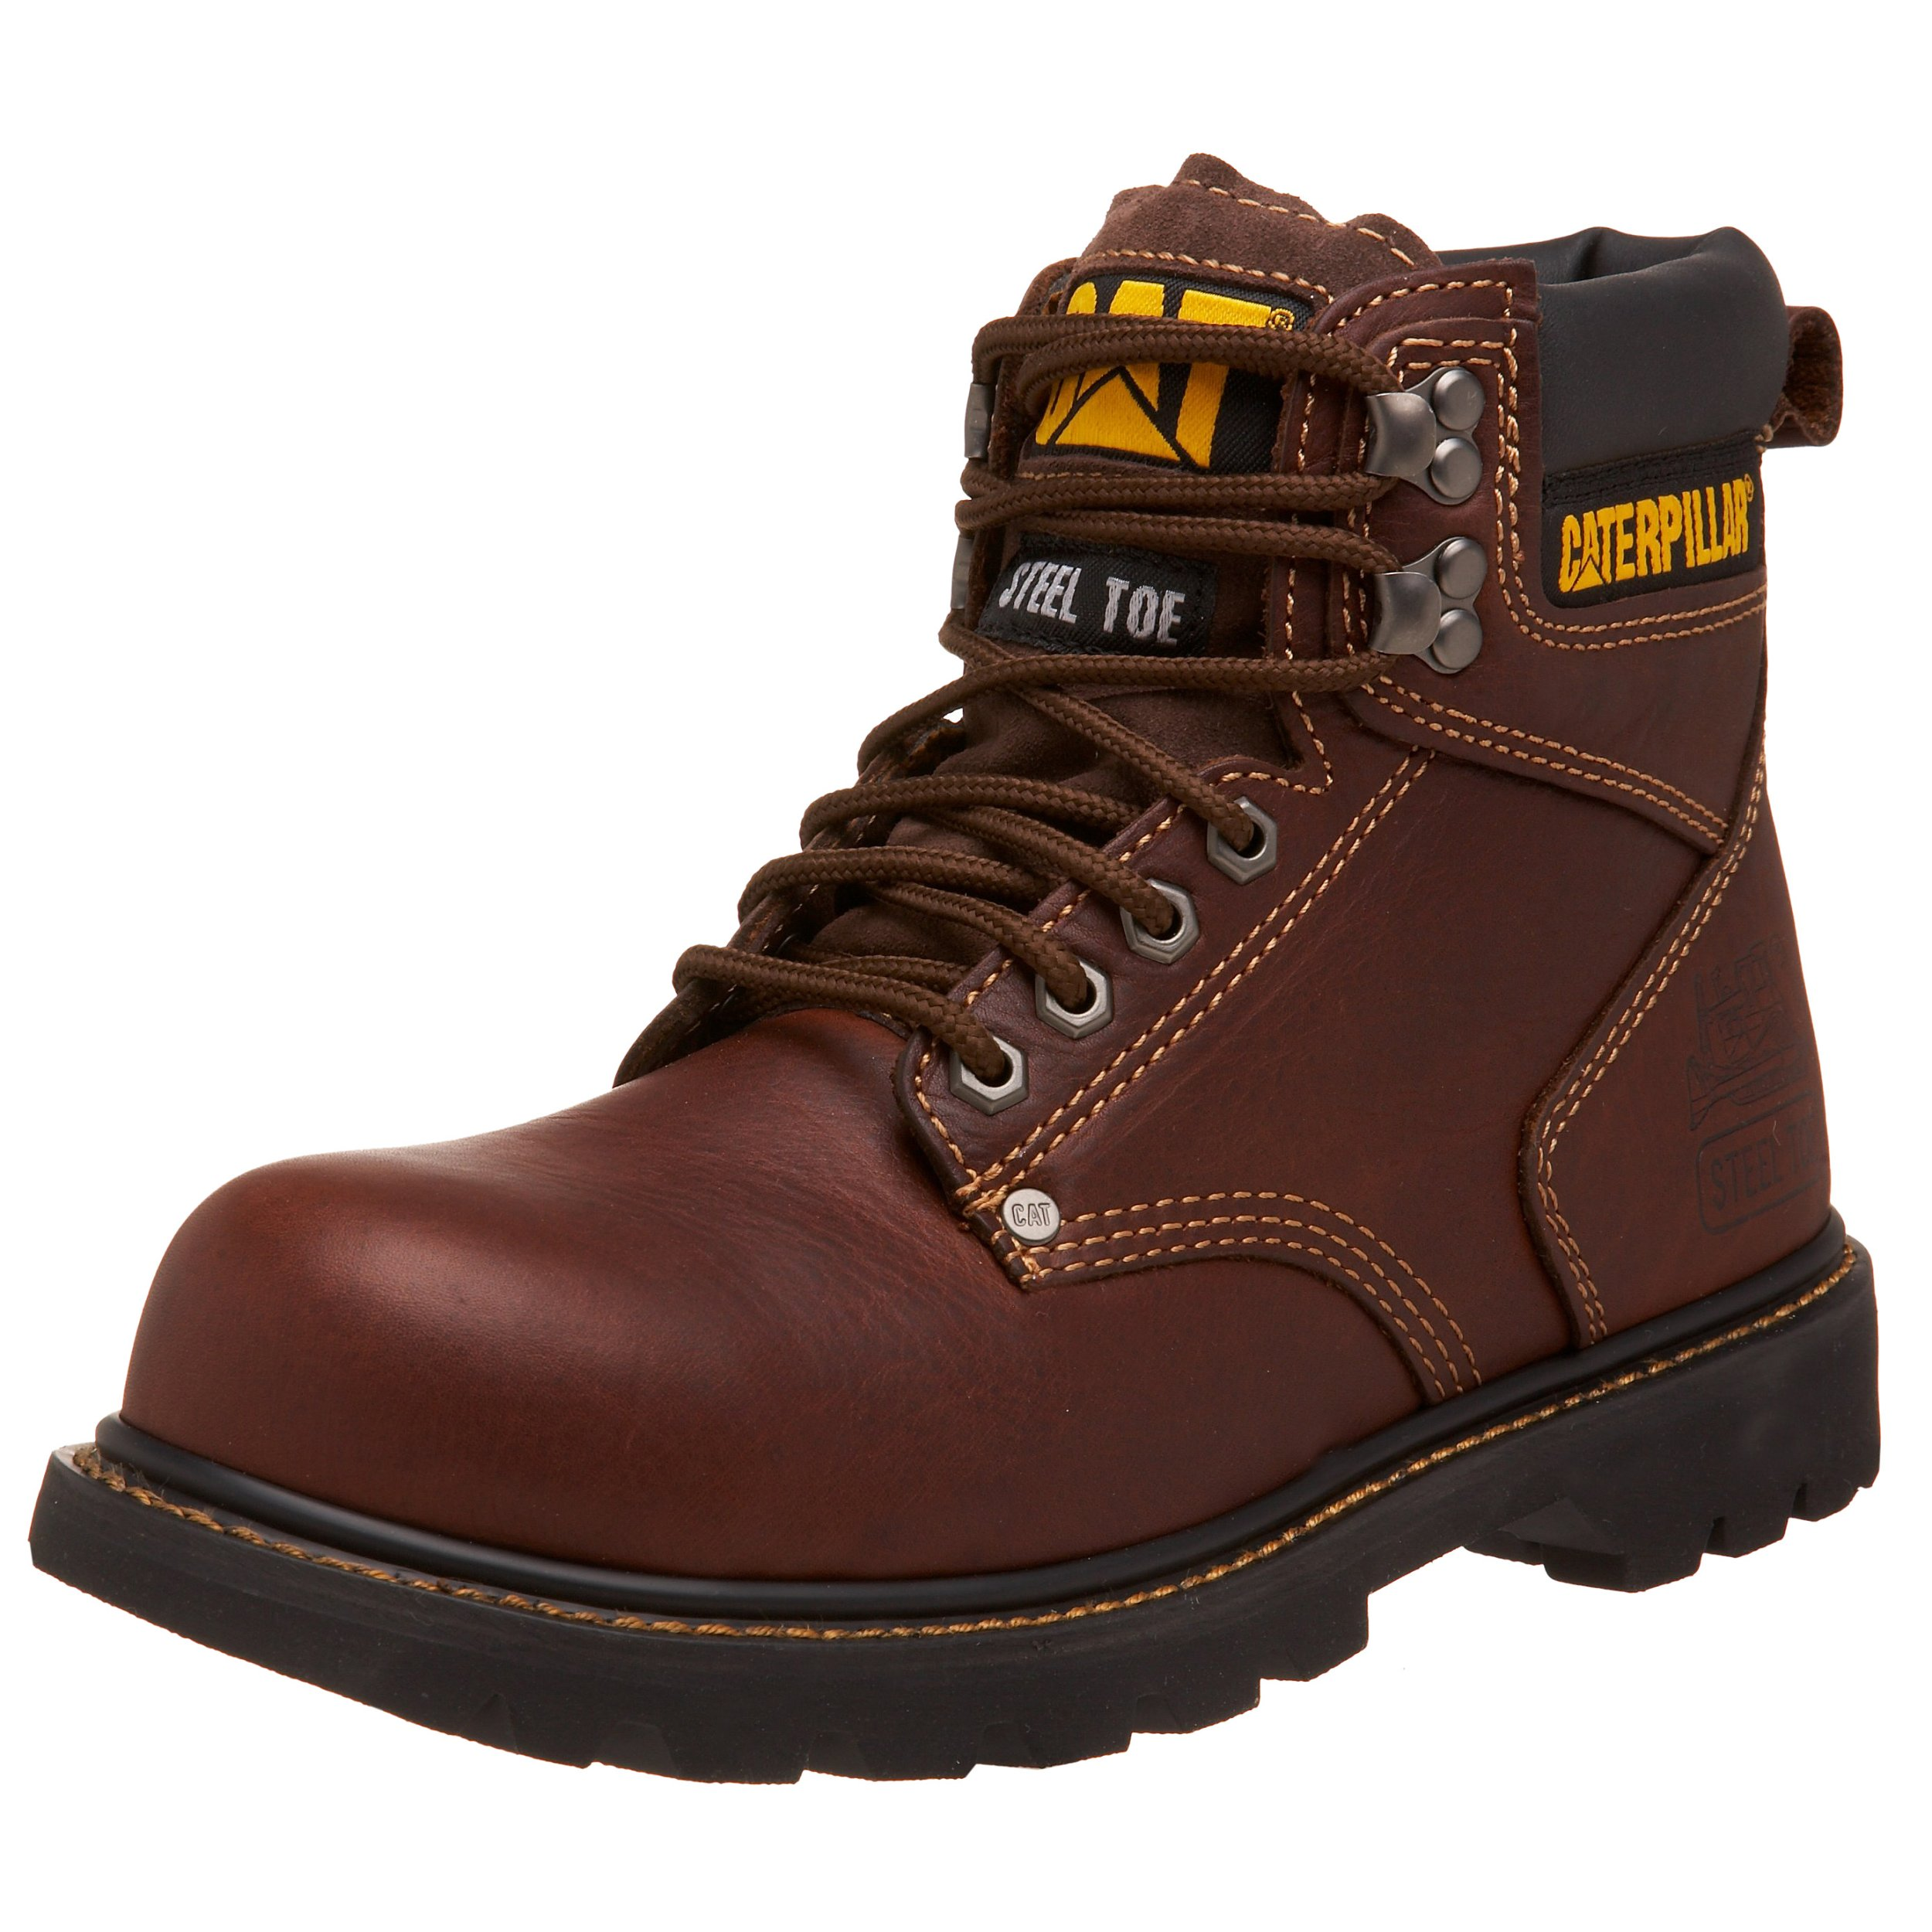 Caterpillar Men's 2nd Shift 6'' Steel Toe Boot,Tan,10 W US by Caterpillar